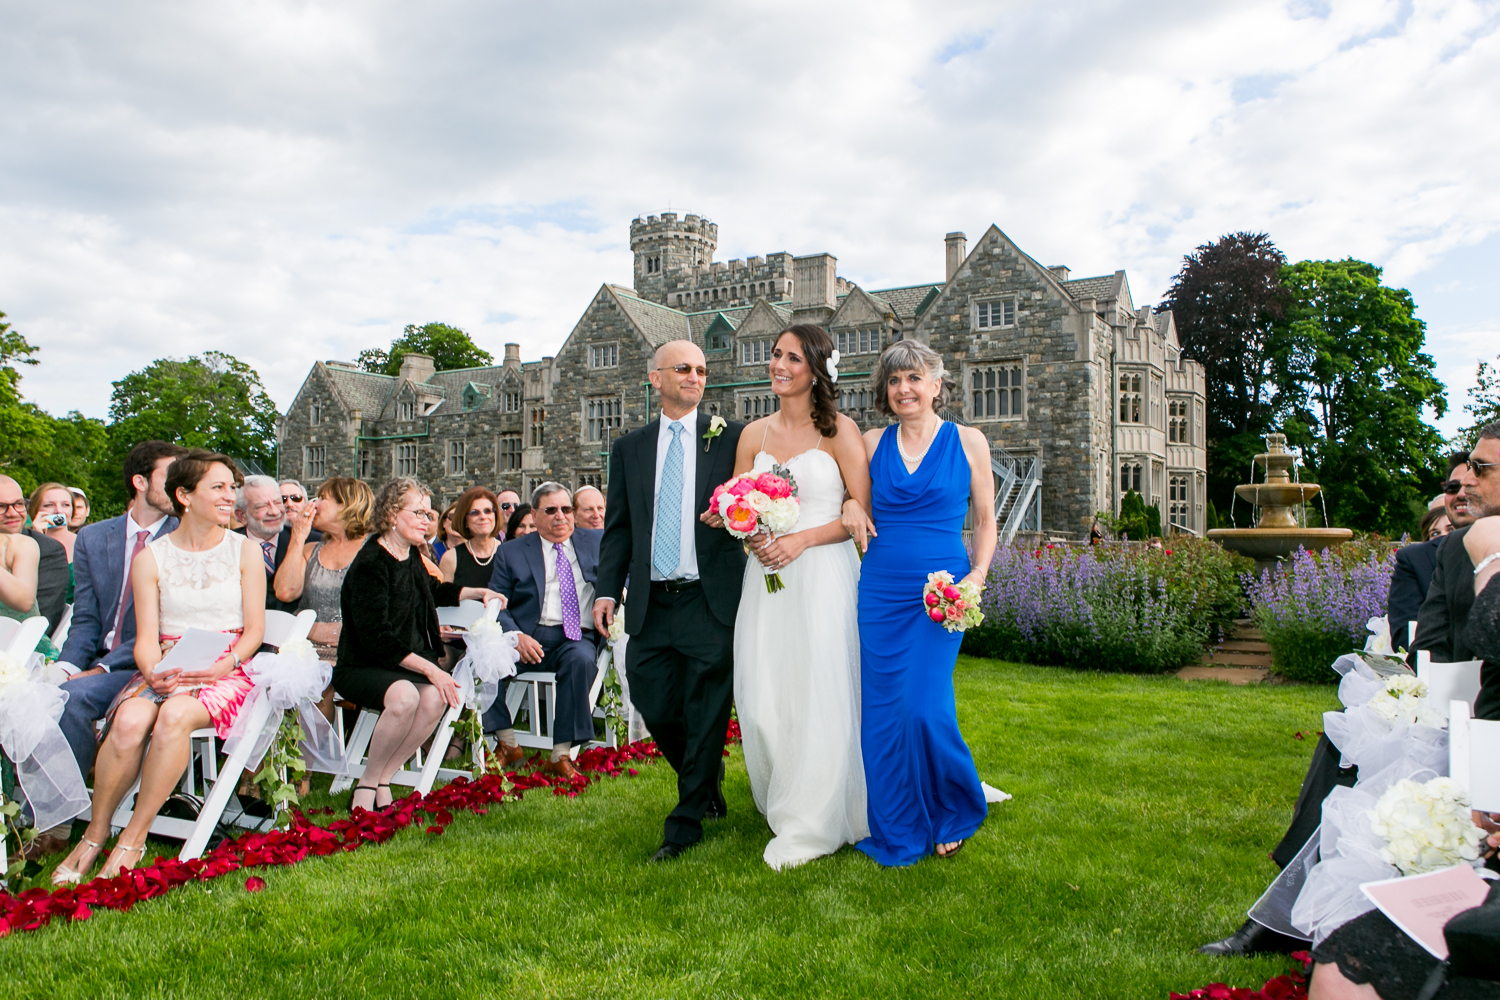 Hempstead House Wedding